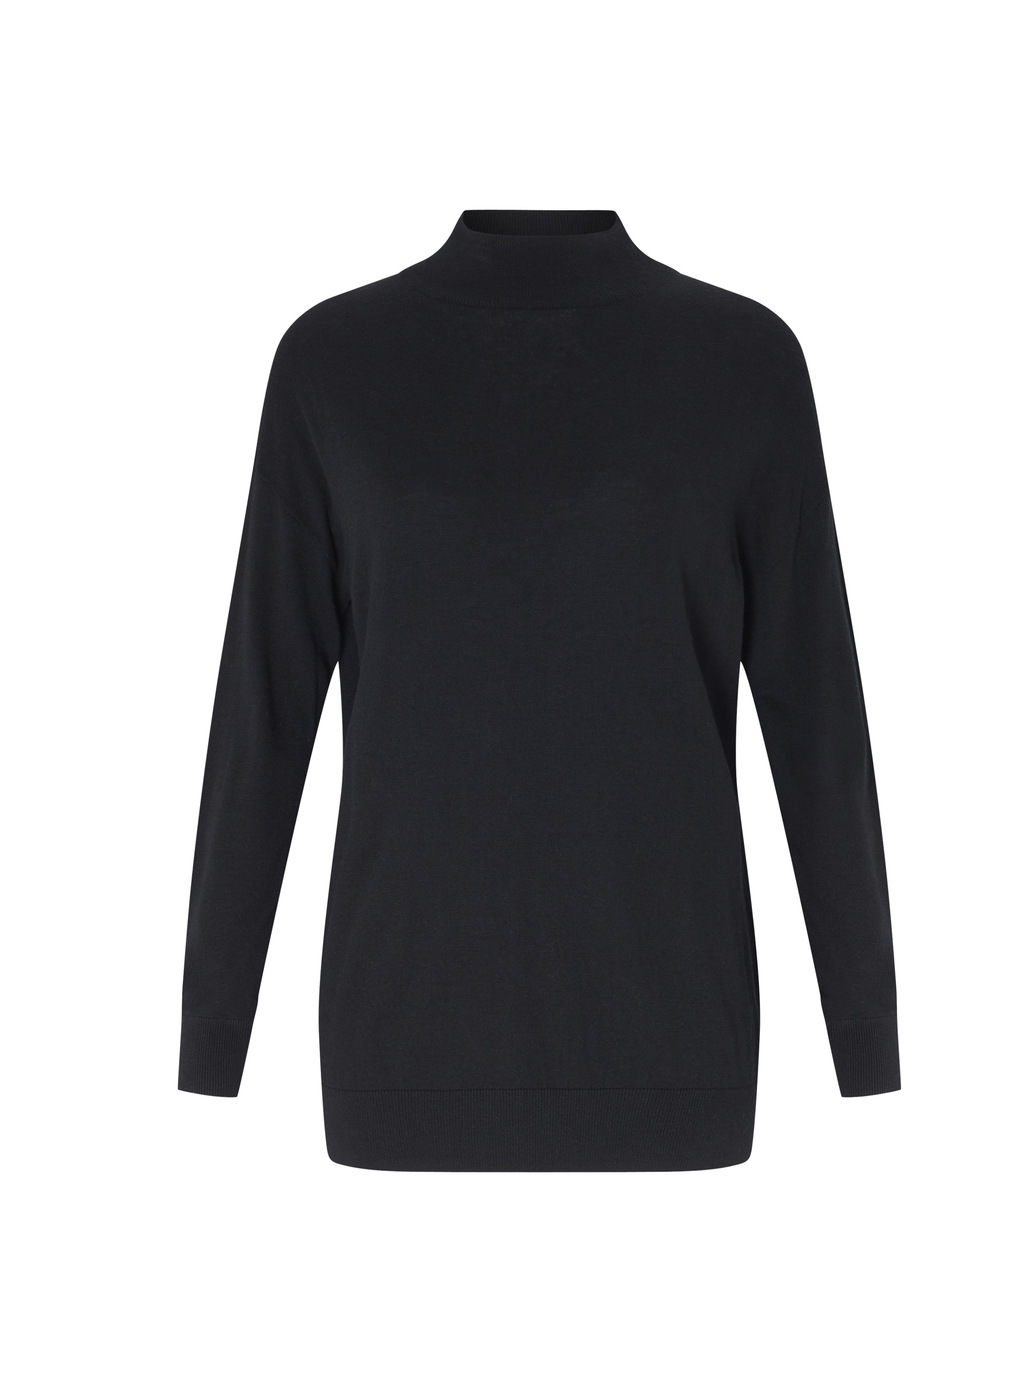 Womenswear Johnson Turtleneck Knit - pattern: plain; neckline: roll neck; style: standard; predominant colour: black; occasions: casual; length: standard; fibres: wool - 100%; fit: slim fit; sleeve length: long sleeve; sleeve style: standard; texture group: knits/crochet; pattern type: knitted - other; wardrobe: basic; season: a/w 2016